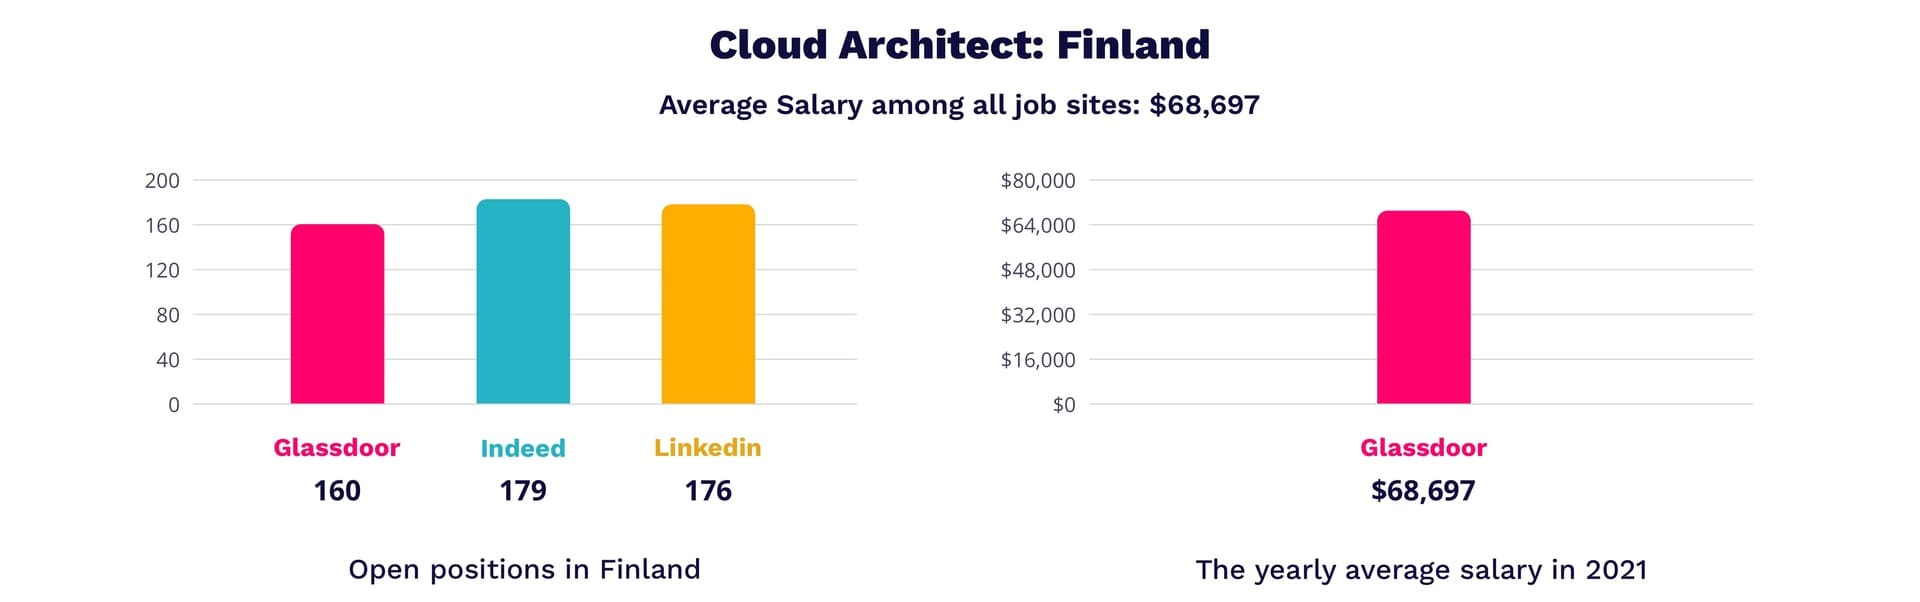 Cloud architect salary in Finland